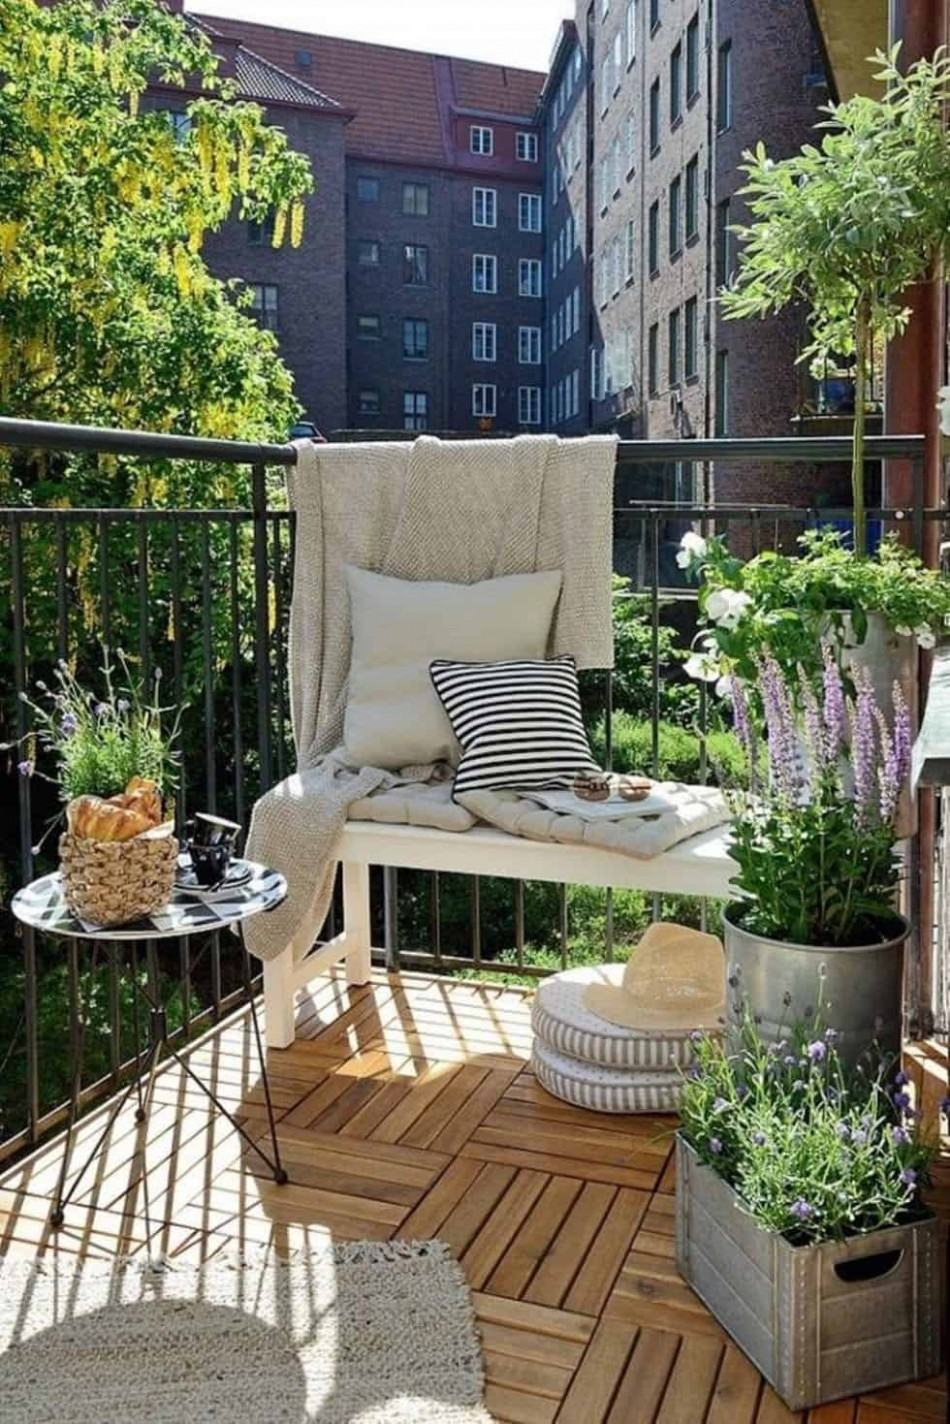 11 Super cool and breezy small balcony design ideas - Decorating Apartment Balcony Ideas